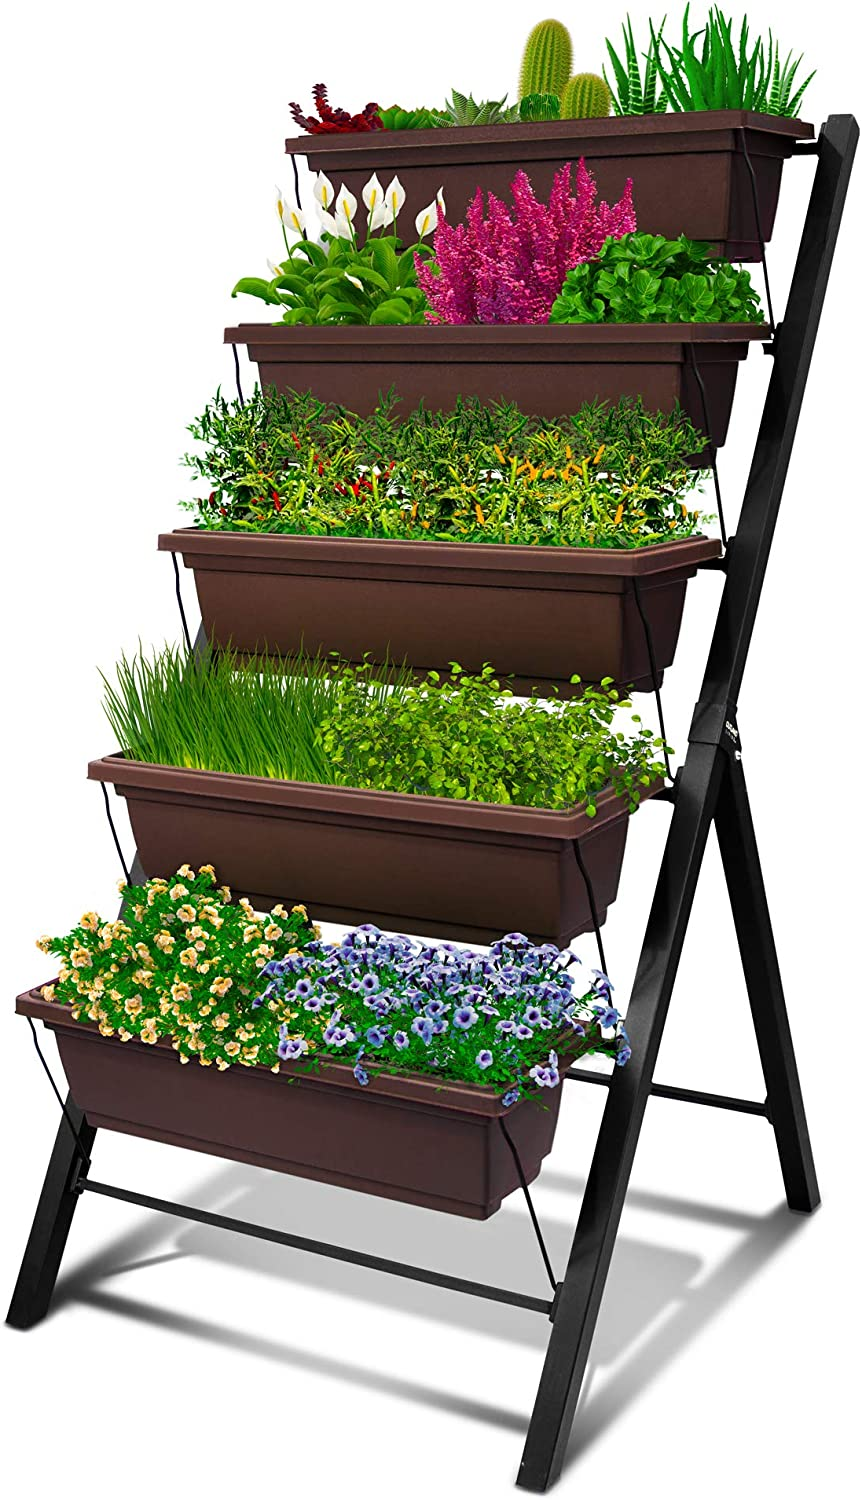 Amazon Com 4ft Vertical Raised Garden Bed 5 Tier Food Safe Planter Box For Outdoor And Indoor Gardening Perfect To Grow Your Herb Vegetables Flowers On Your Patio Balcony Greenhouse Garden Garden